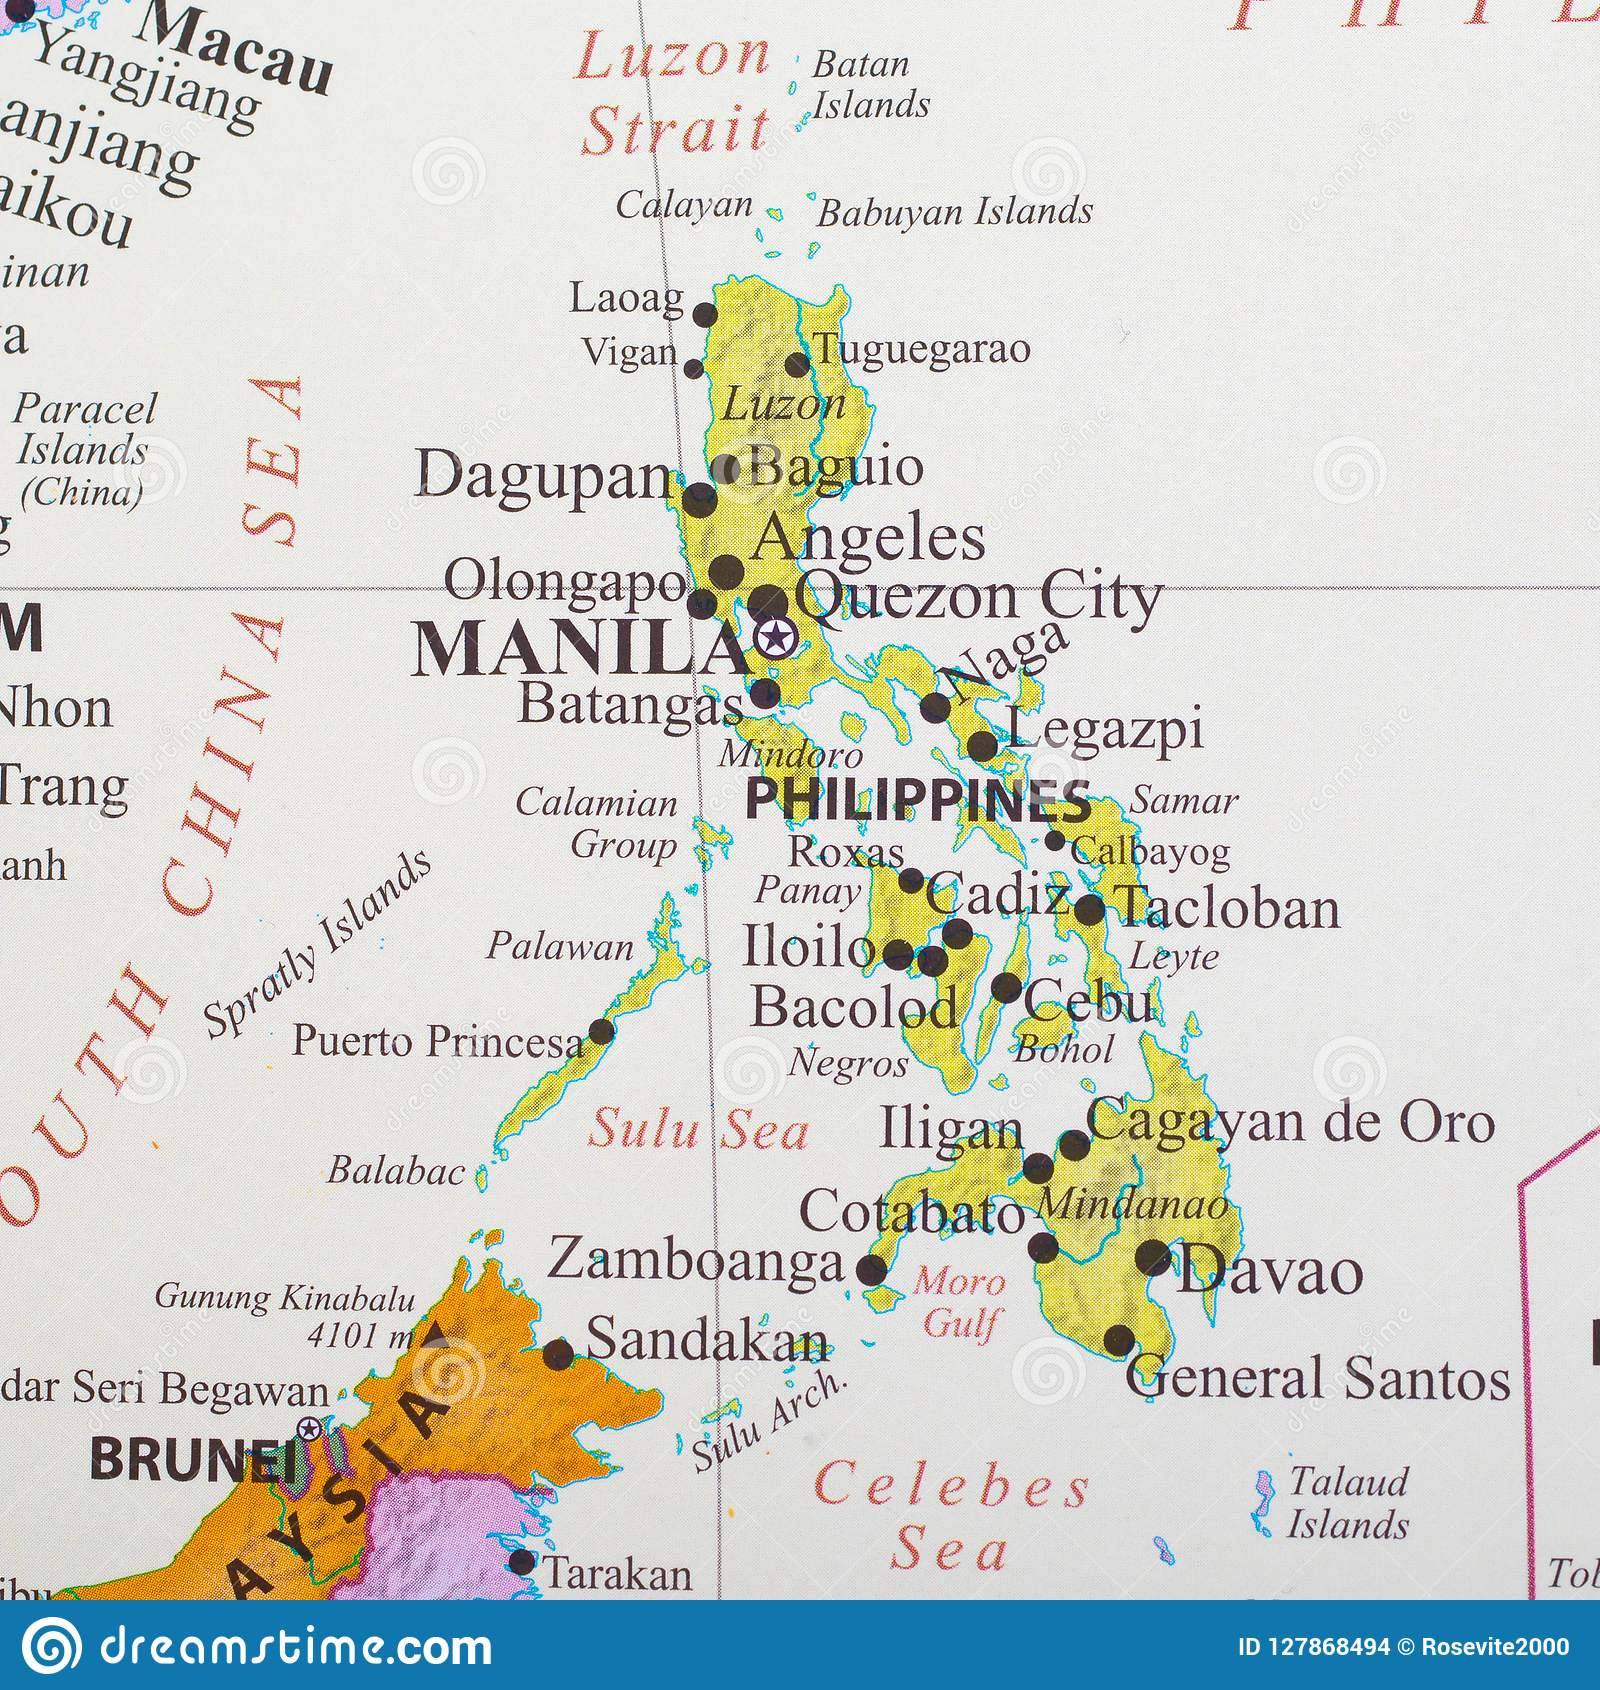 Map Of Laoag City Philippines on map of dipolog city philippines, map of bayugan city philippines, map of mandaluyong city philippines, map of cebu city philippines, map of davao city philippines, map of las pinas city philippines, map of antipolo city philippines, map of ormoc city philippines, map of general santos city philippines, map of caloocan city philippines, map of manila city philippines, hotels in laoag philippines, map of calbayog city philippines, map of lucena city philippines, map of tabaco city philippines, map of dagupan city philippines, map of maasin city philippines, map of pasig city philippines, map of pasay city philippines, map of taguig city philippines,